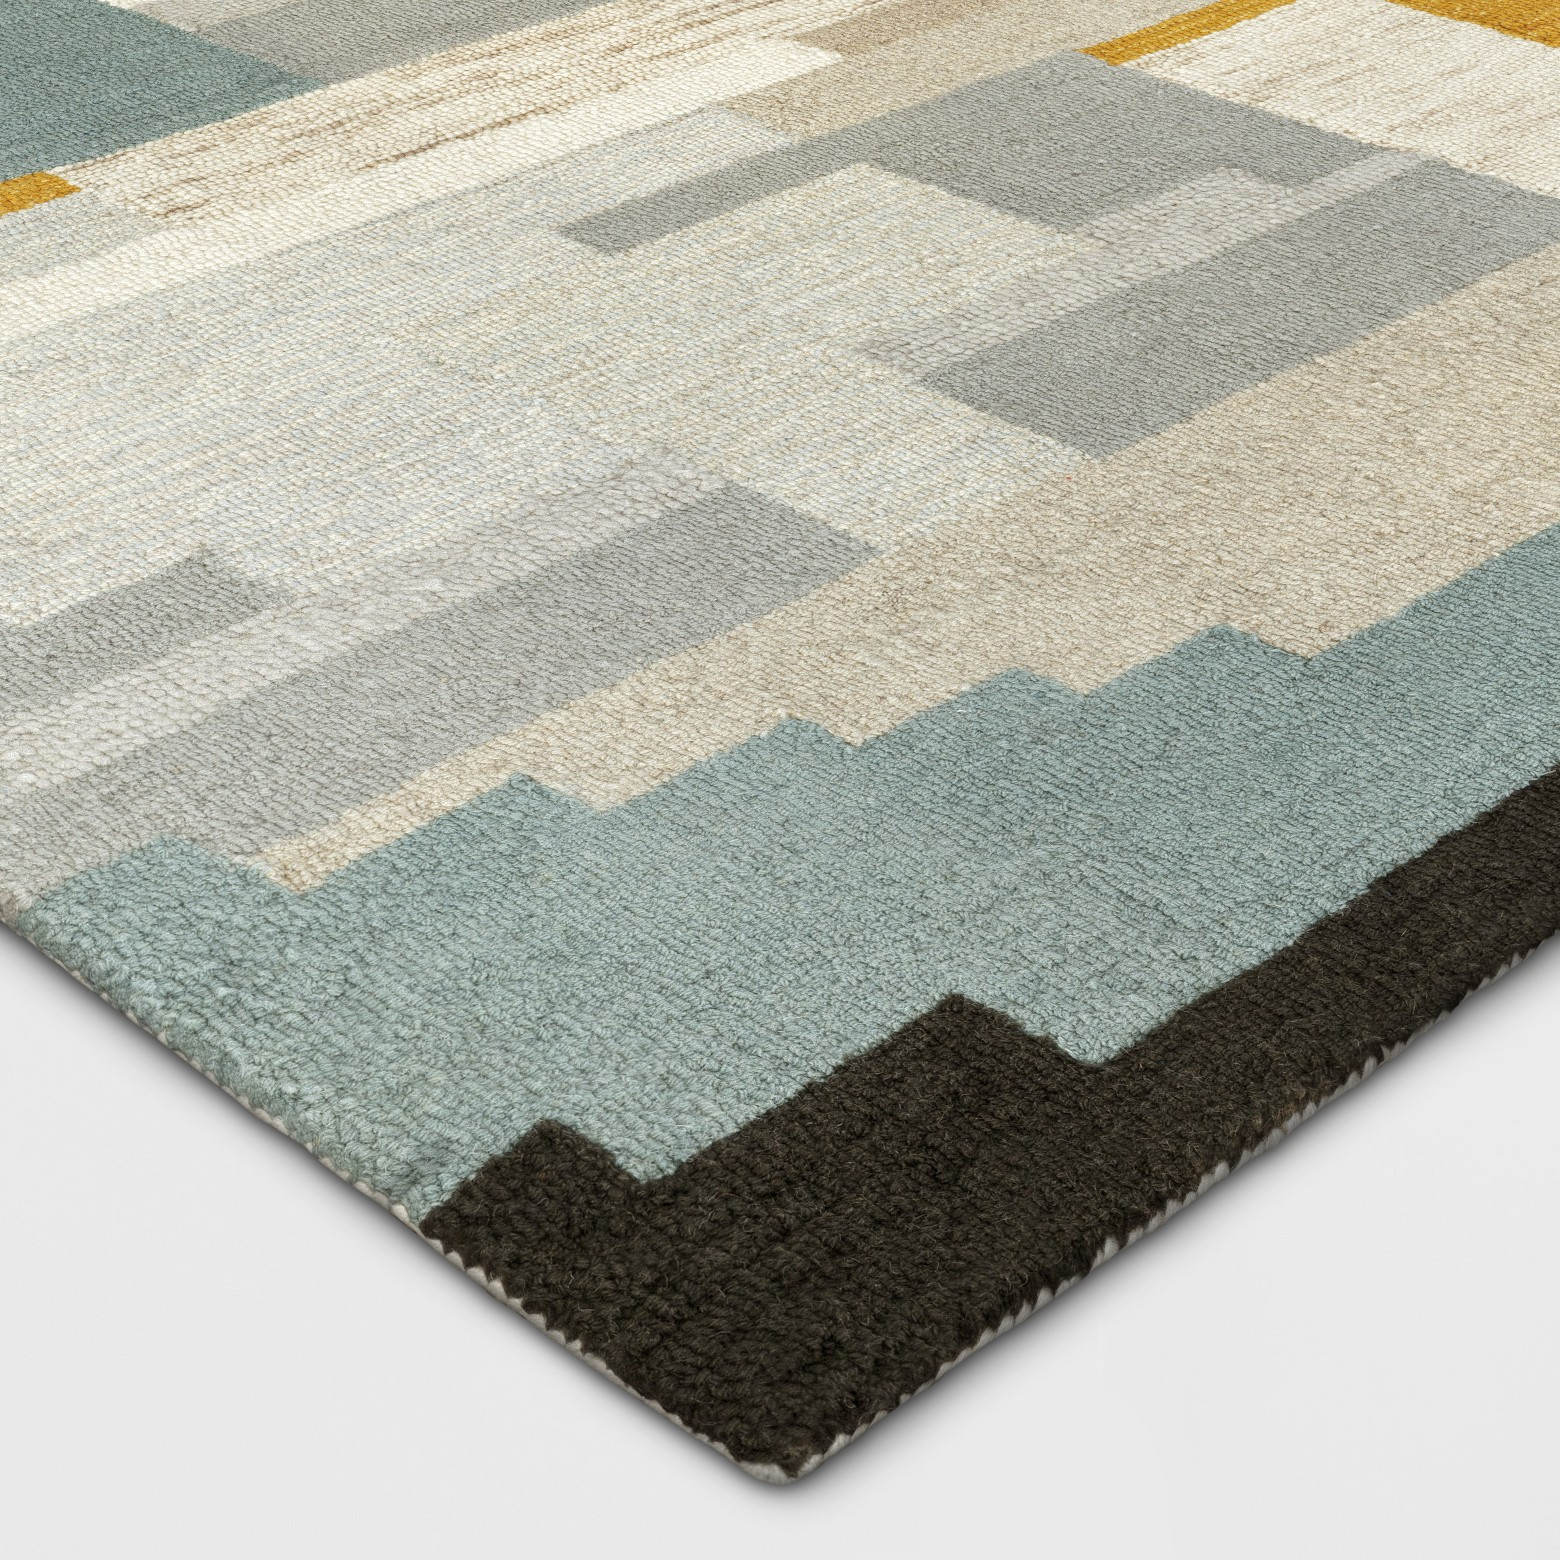 Multicolor Abstract Tufted Area Rug